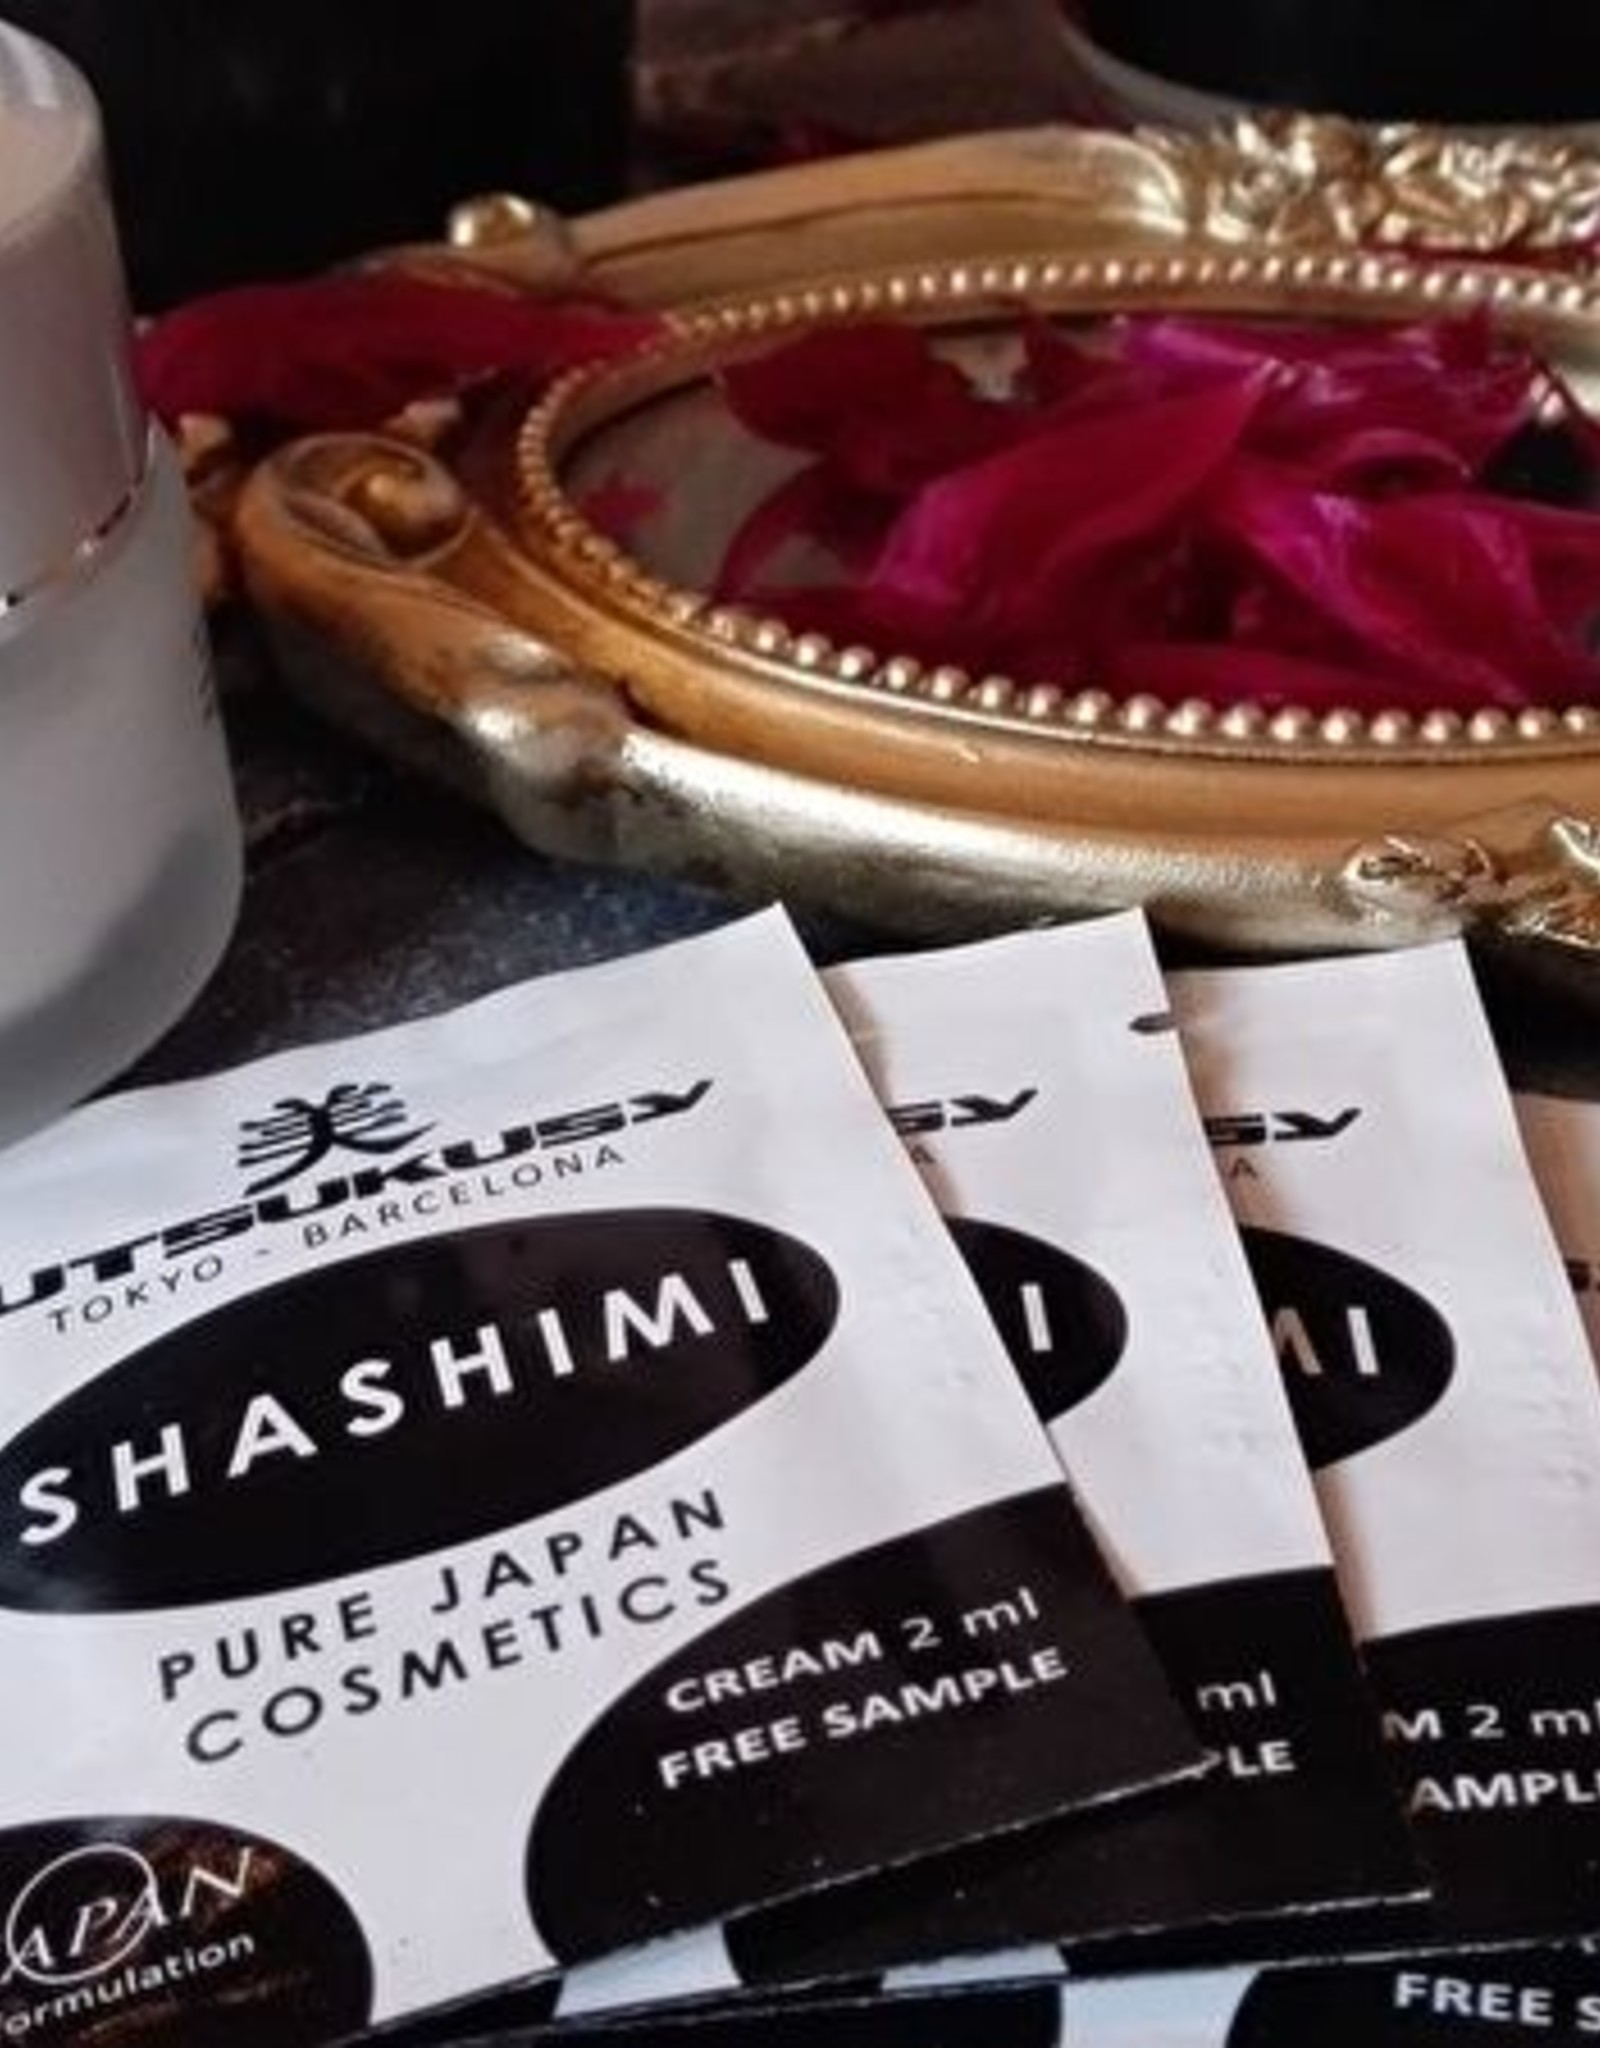 Utsukusy Sample sachets Shashimi cream 5x2ml